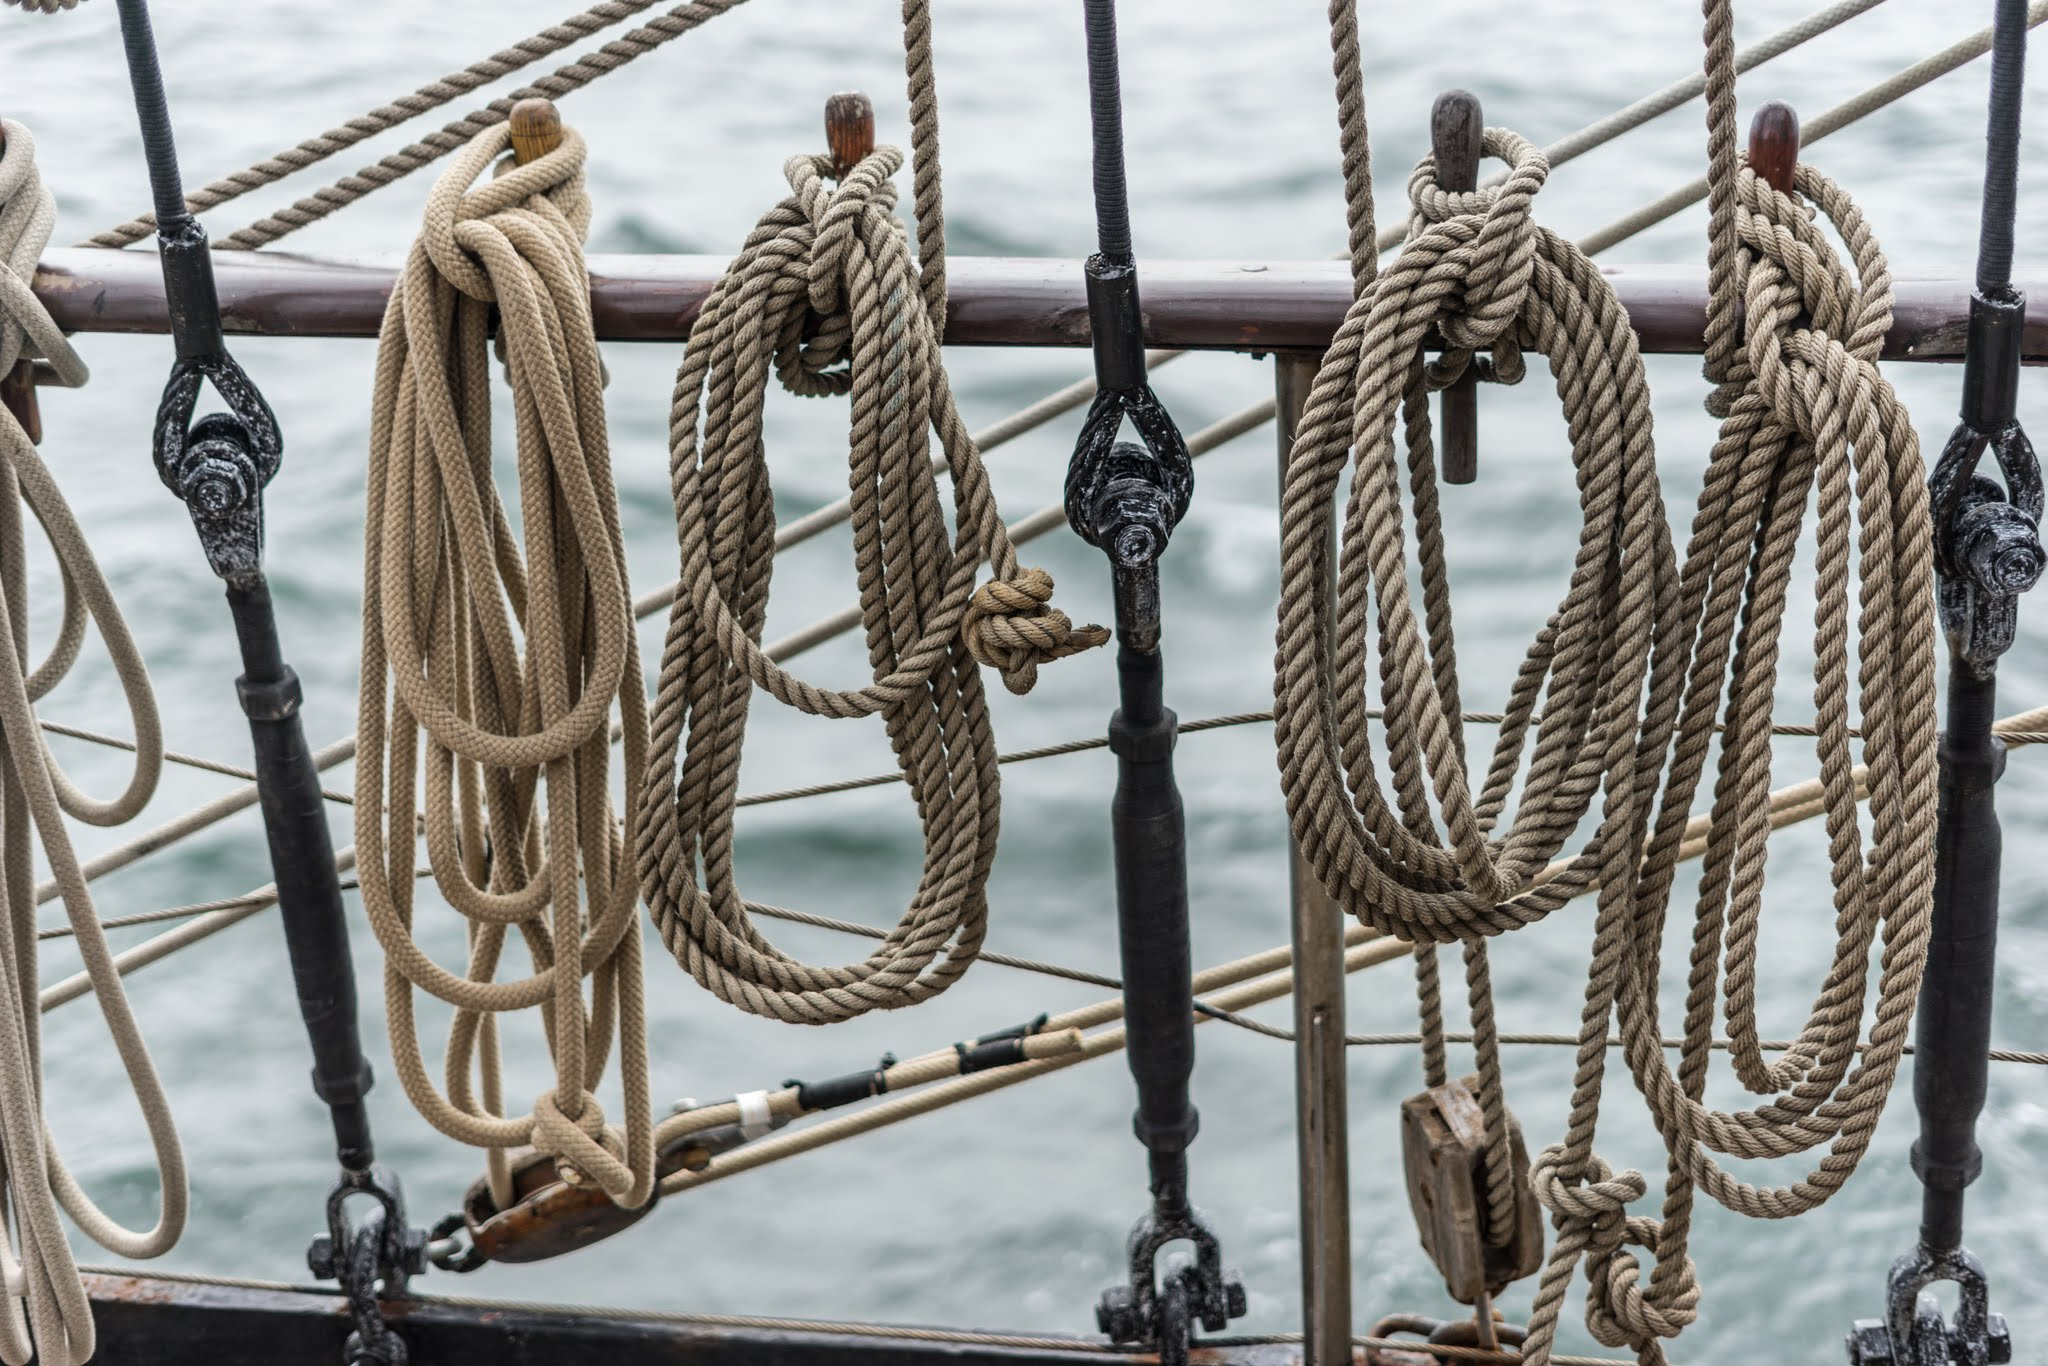 Ropes on tall ship Atlantis